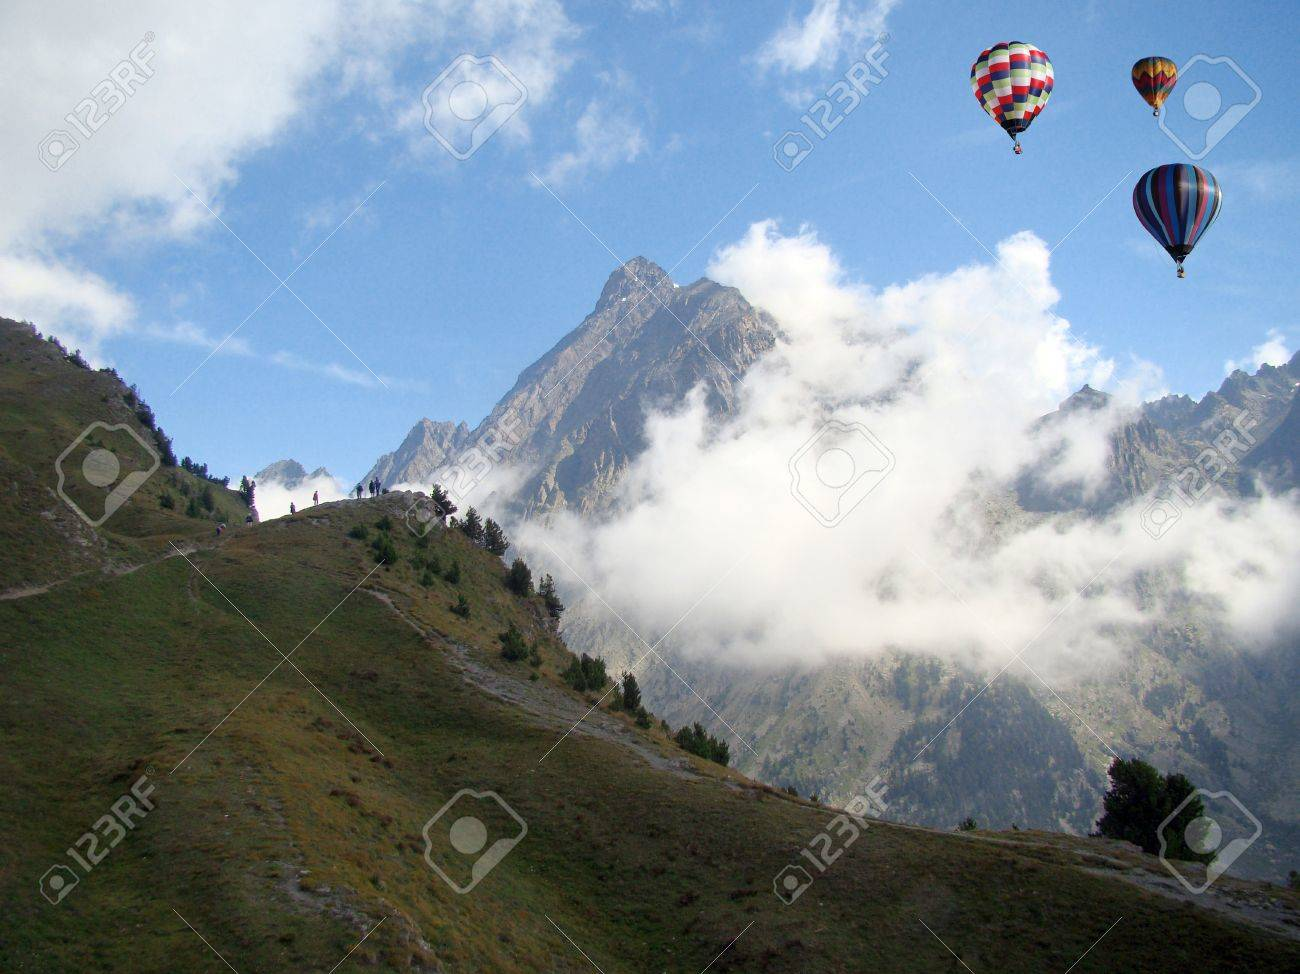 Hot-air Balloons over the Monviso Mount in the Alps, Piedmont, Italy Stock Photo - 17275103